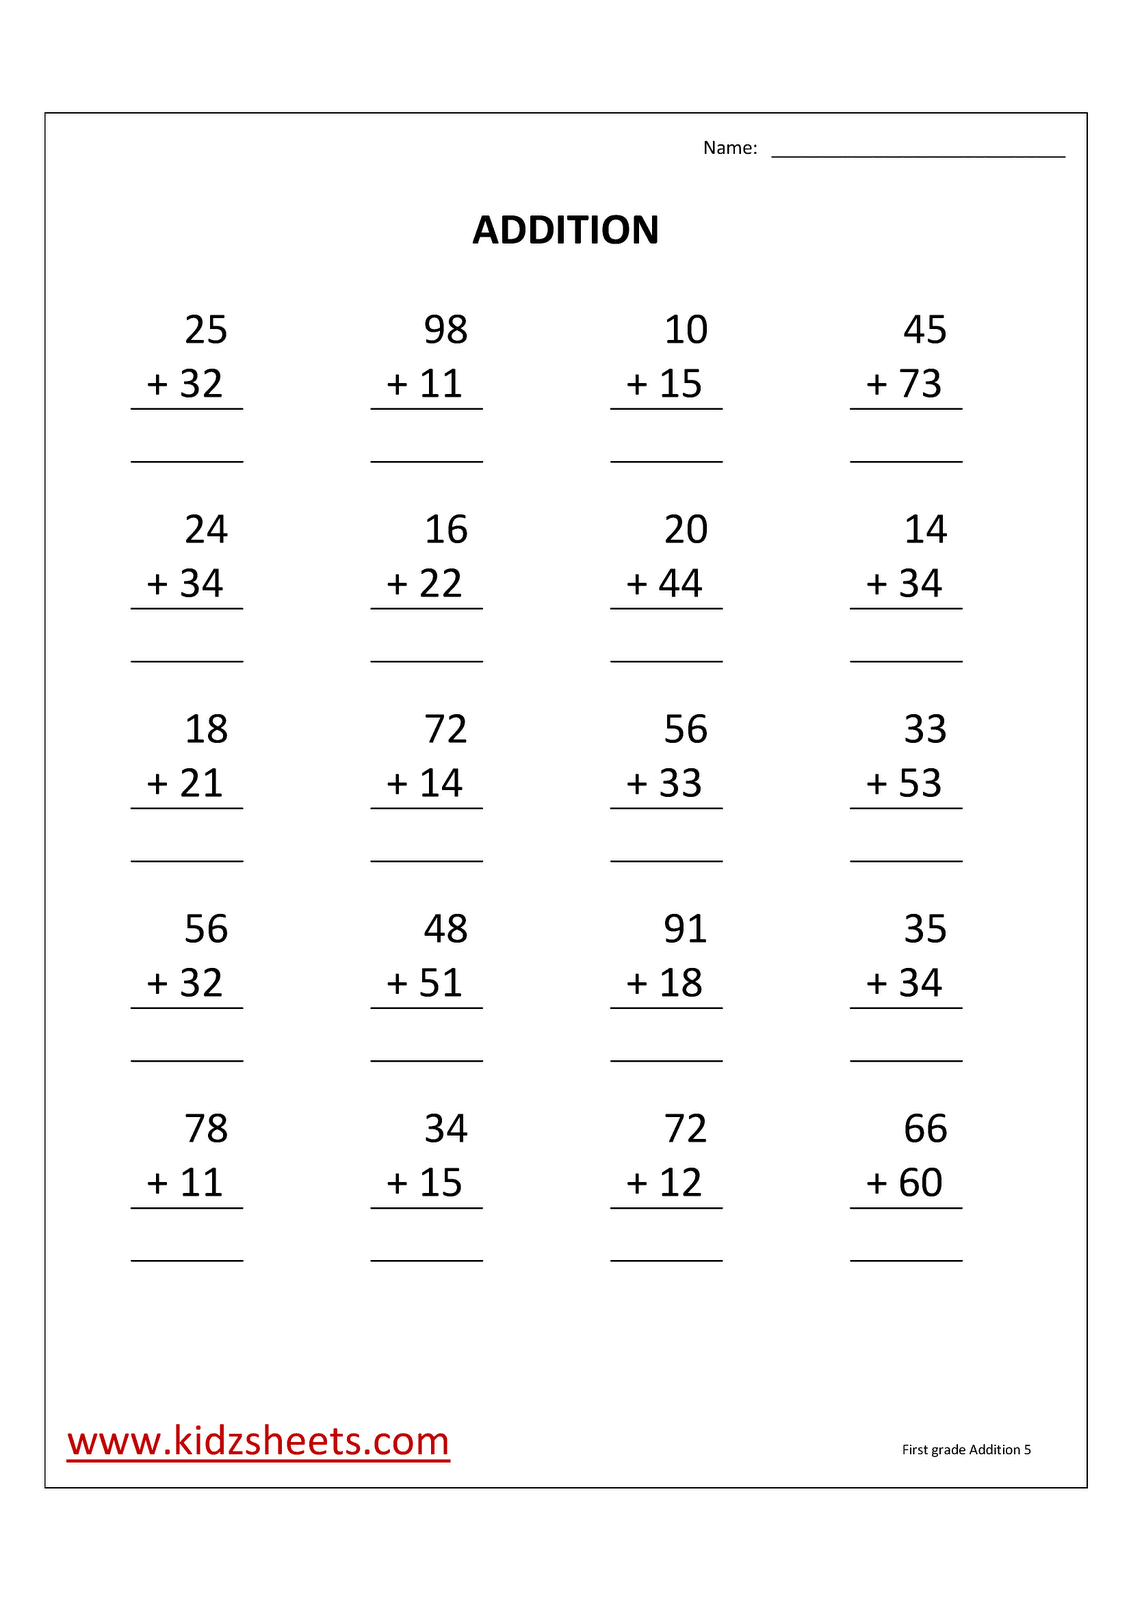 Kidz Worksheets First Grade Addition Worksheet5